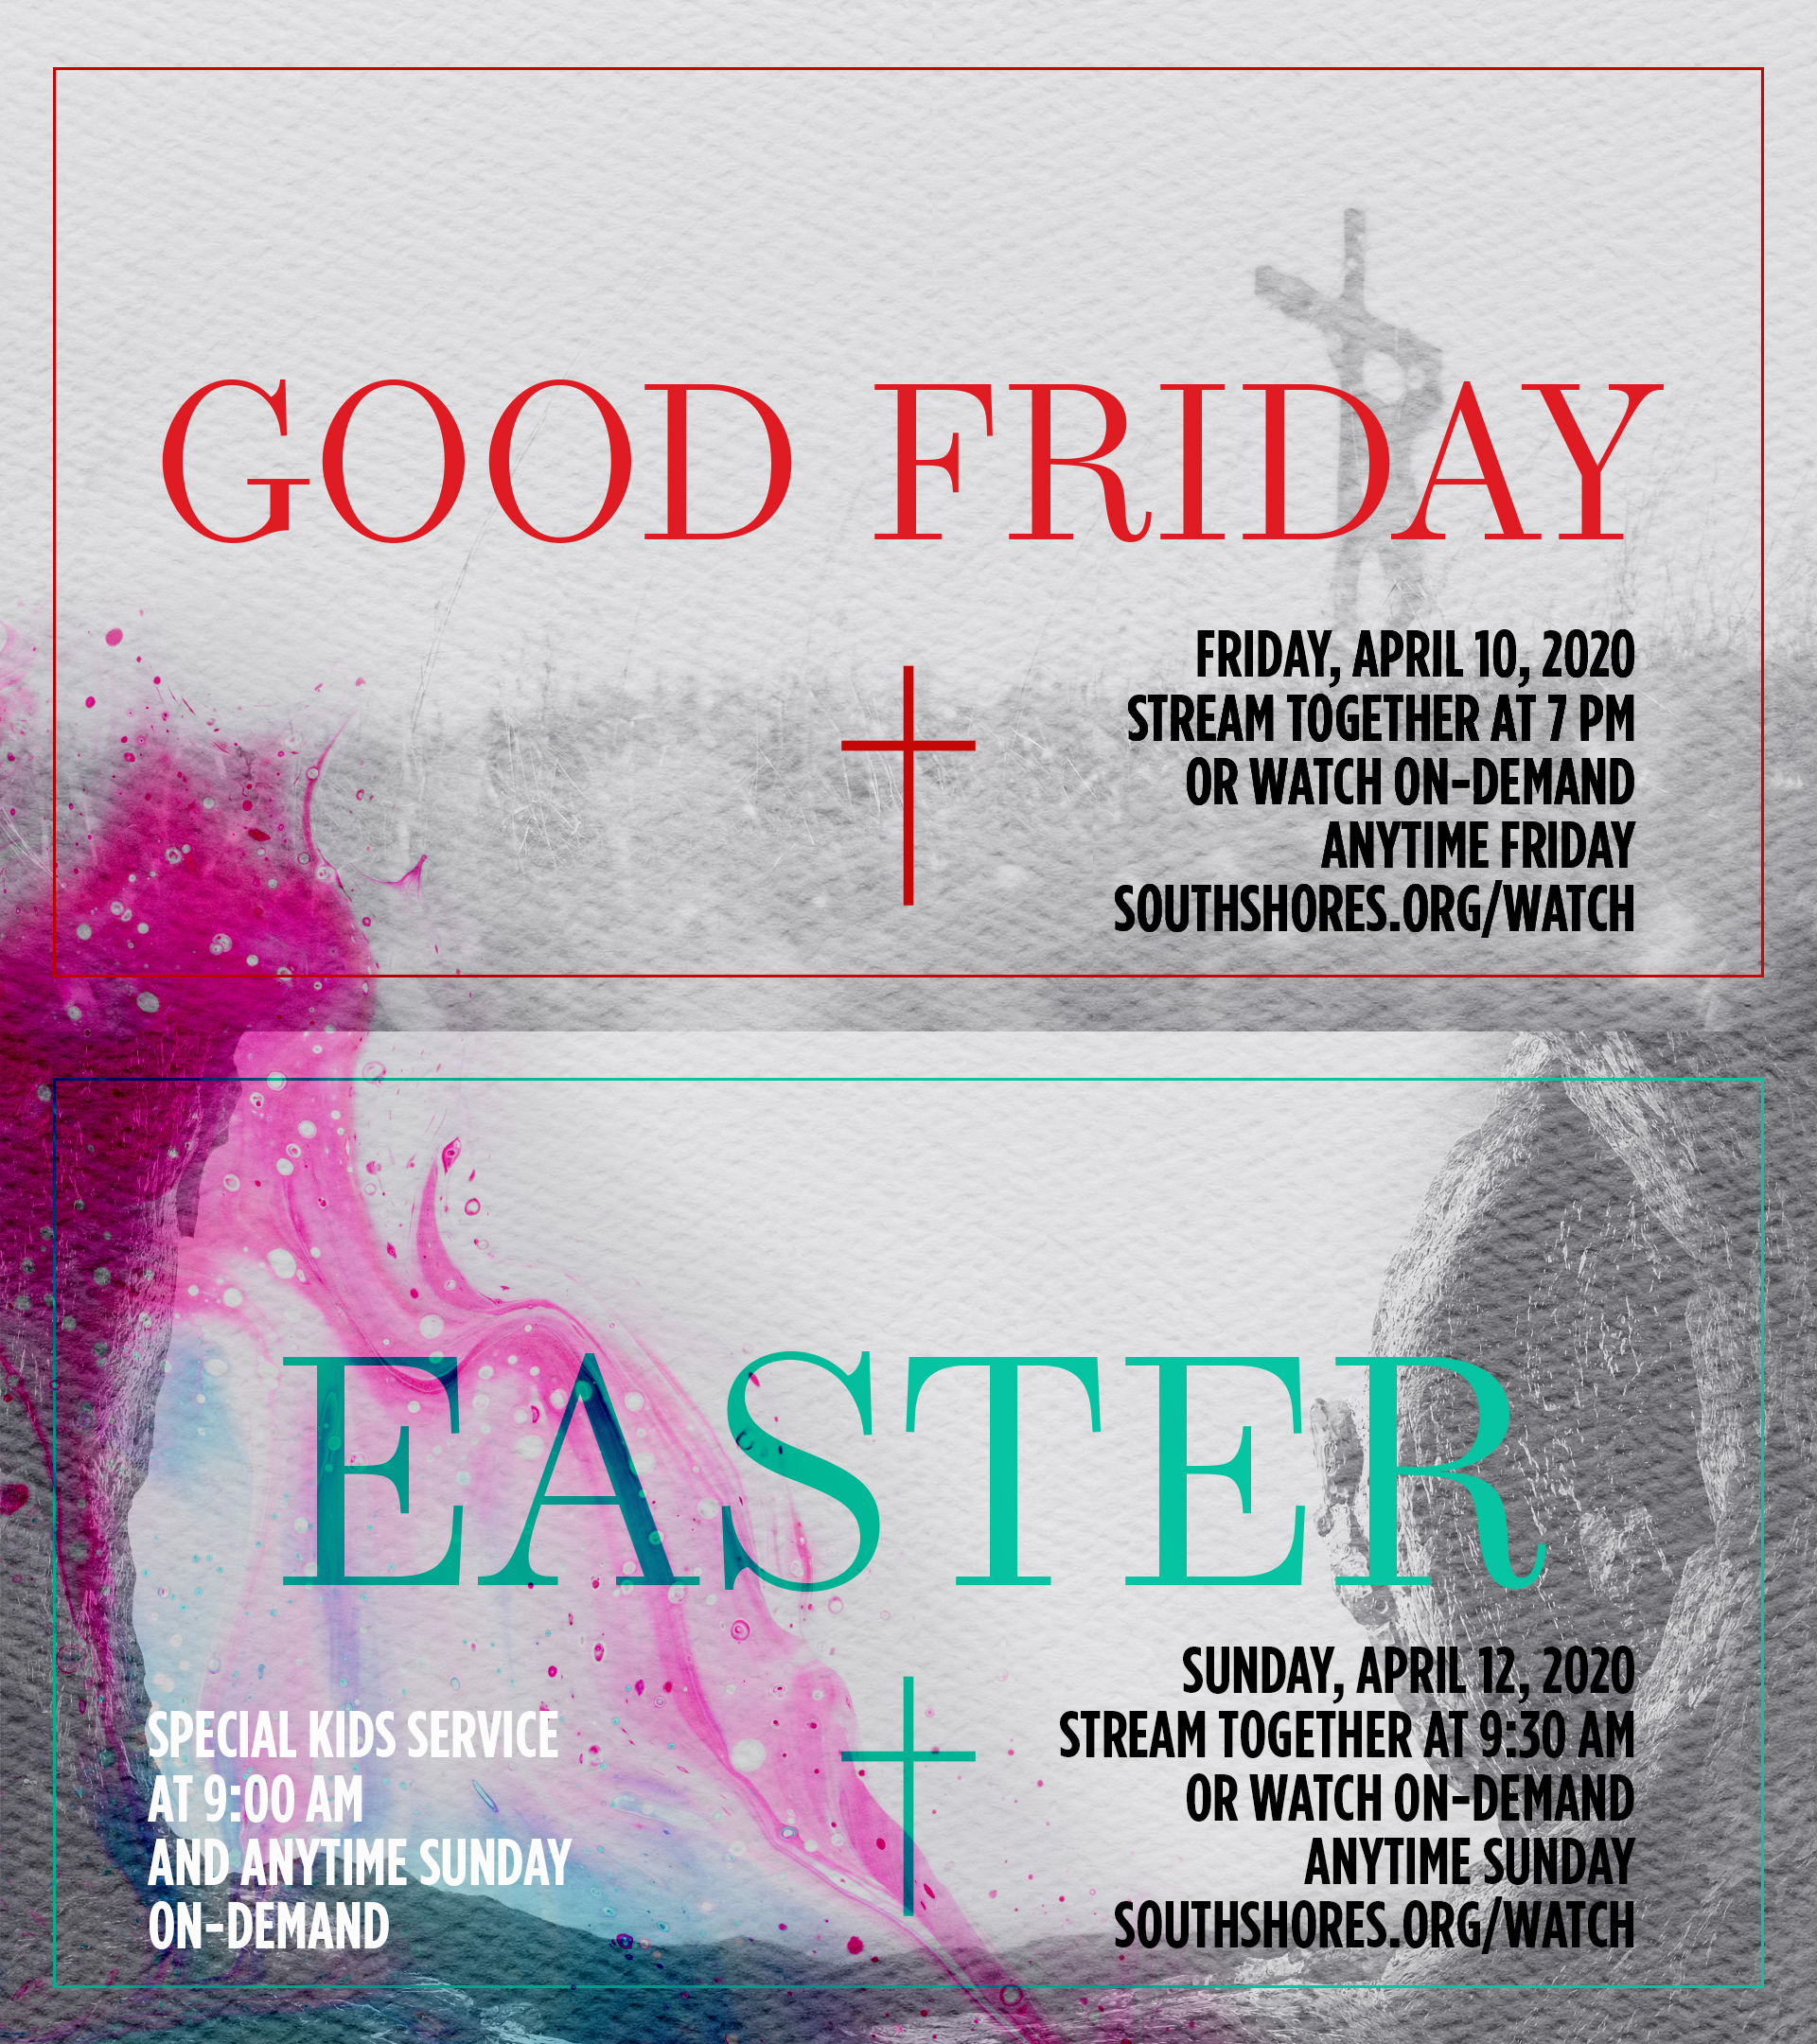 GOODFRIDAY-EASTERSUNDAY-COMBINED